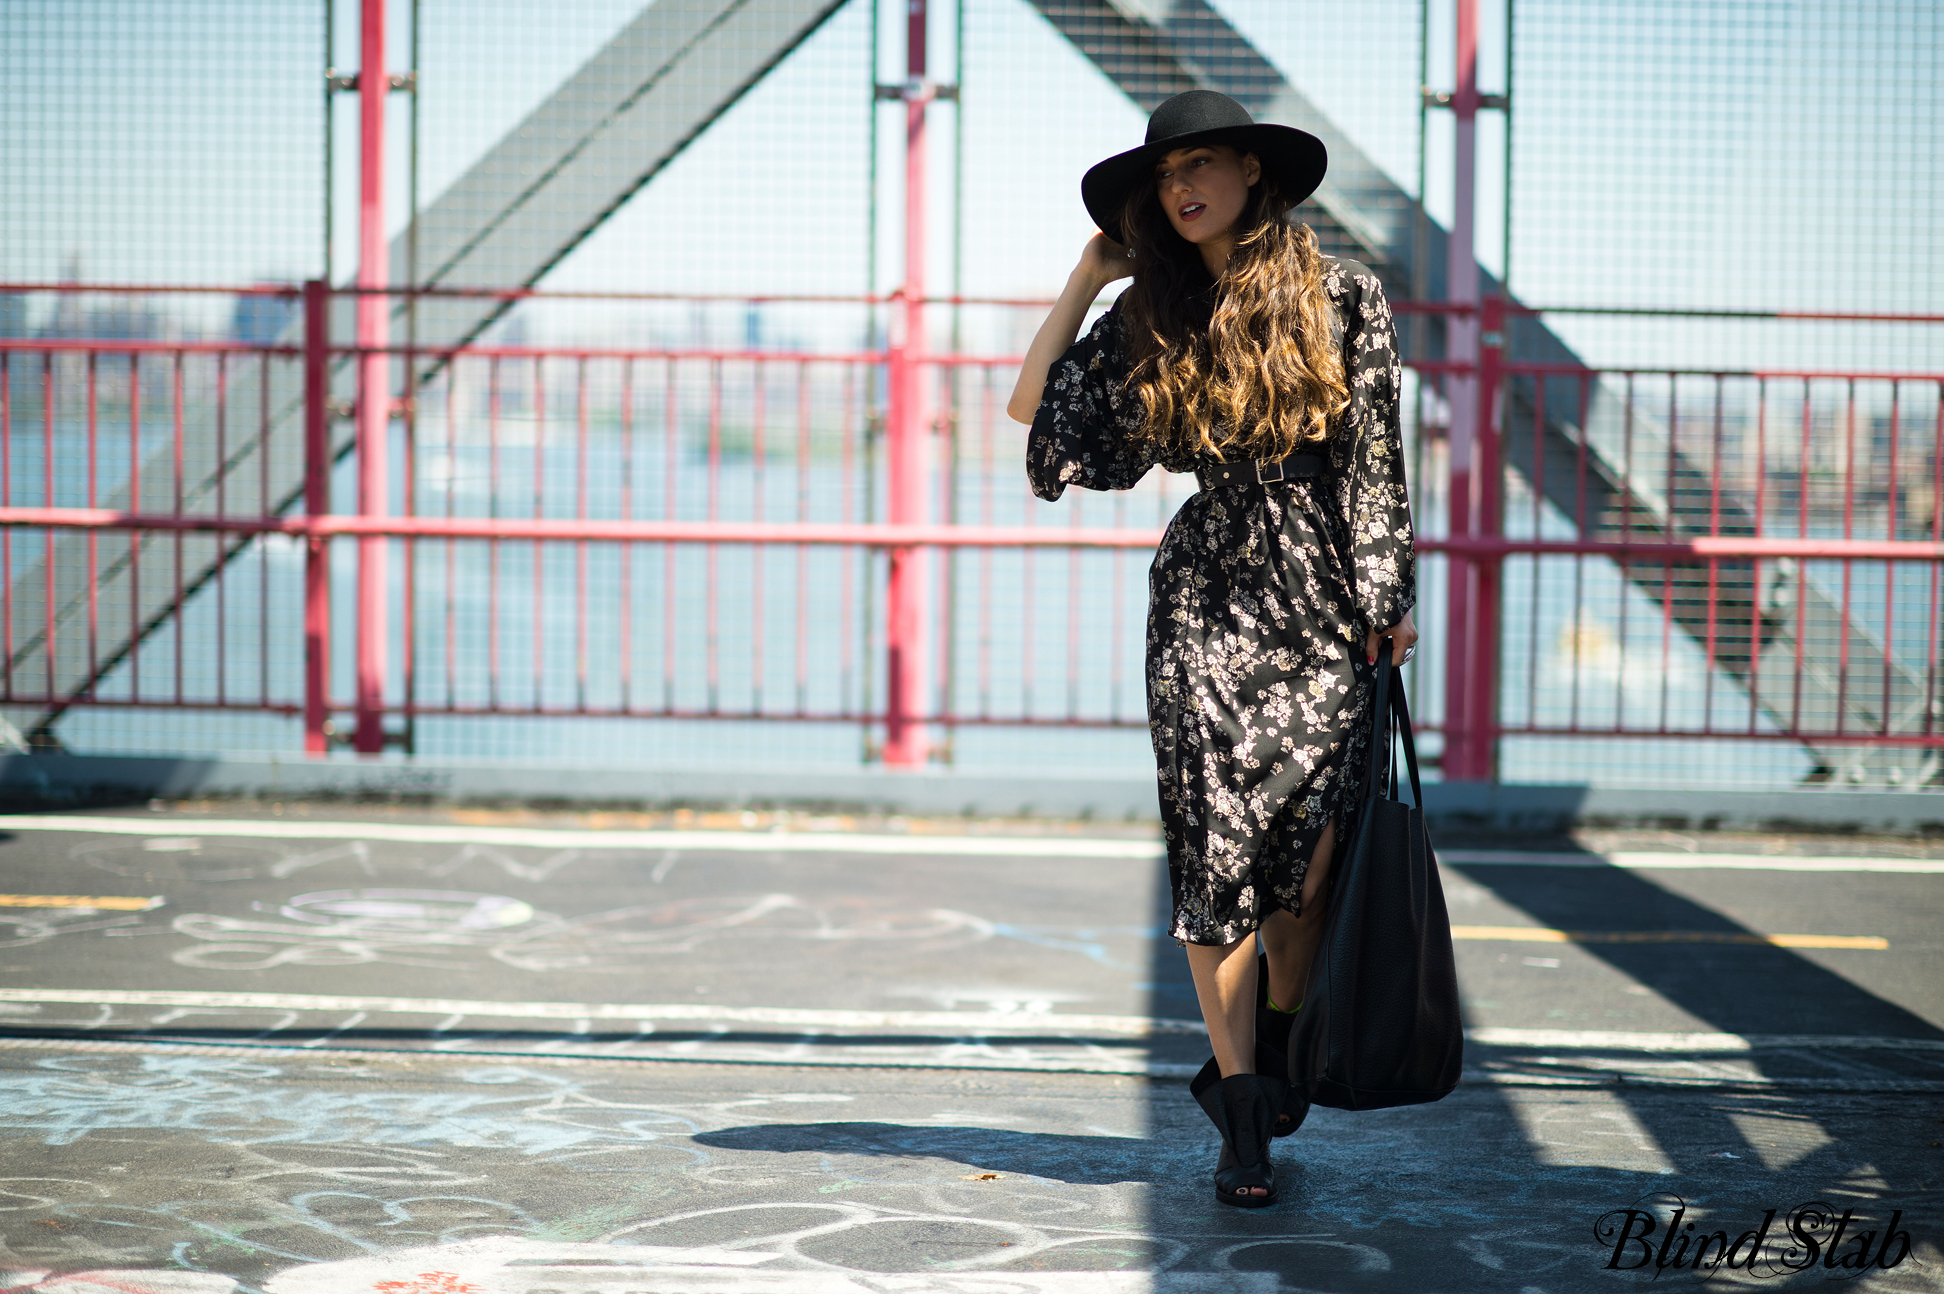 Blind-Stab-Dana-Suchow-Spring-4-Zana-Bayne-Harness-Wide-Brim-Hat-Williamsburg-Bridge-Topshop-Kimono-Dress